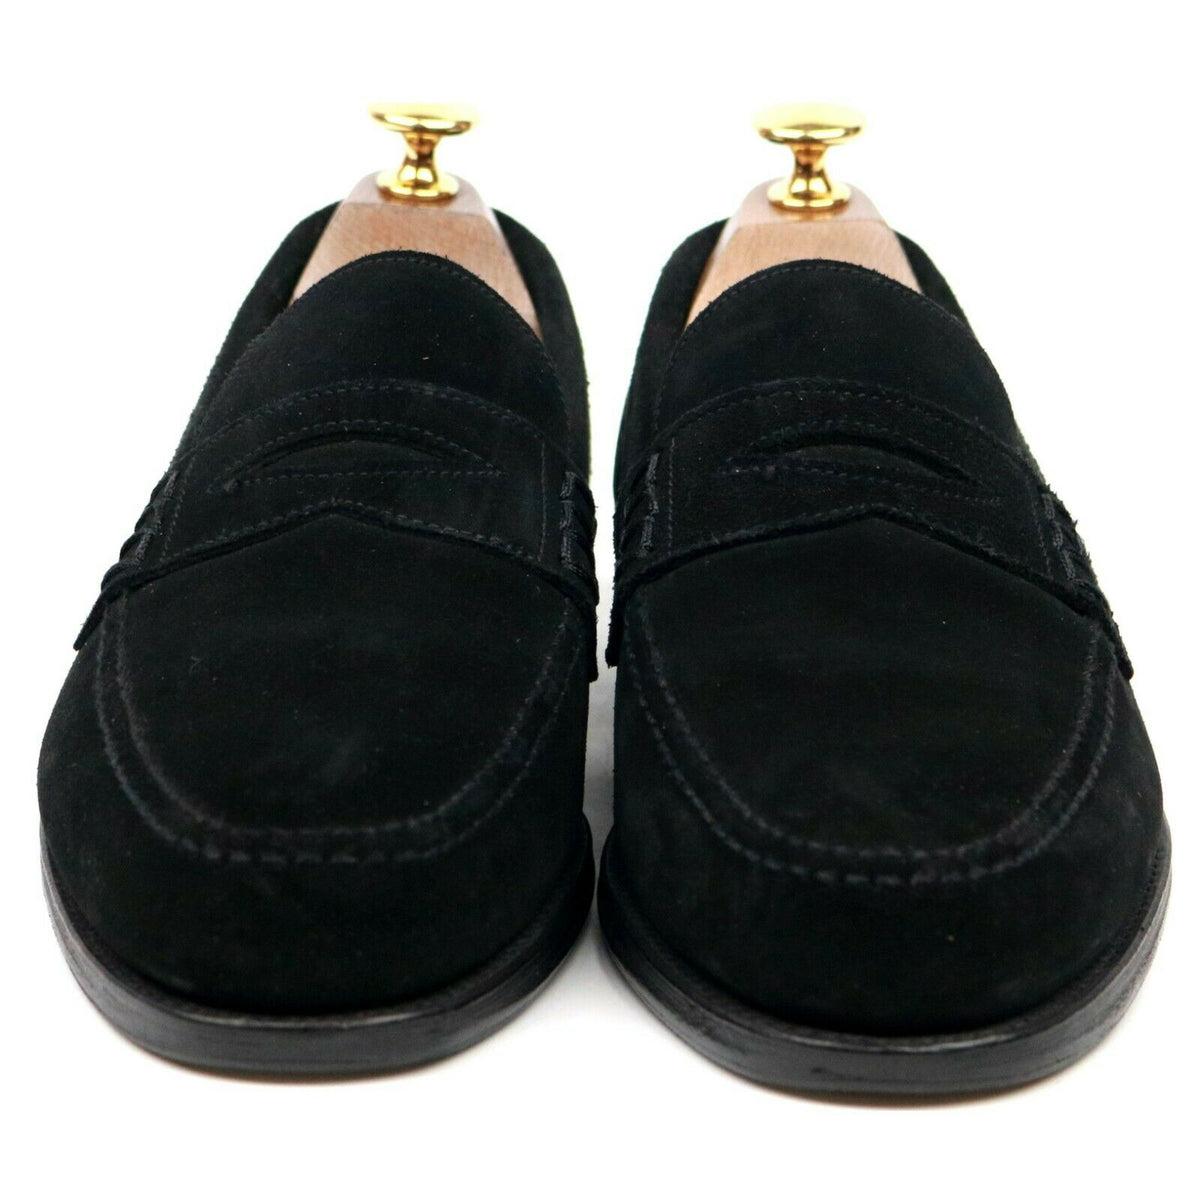 Alfred Sargent 'Finsbury' Black Suede Loafers UK 6 EX